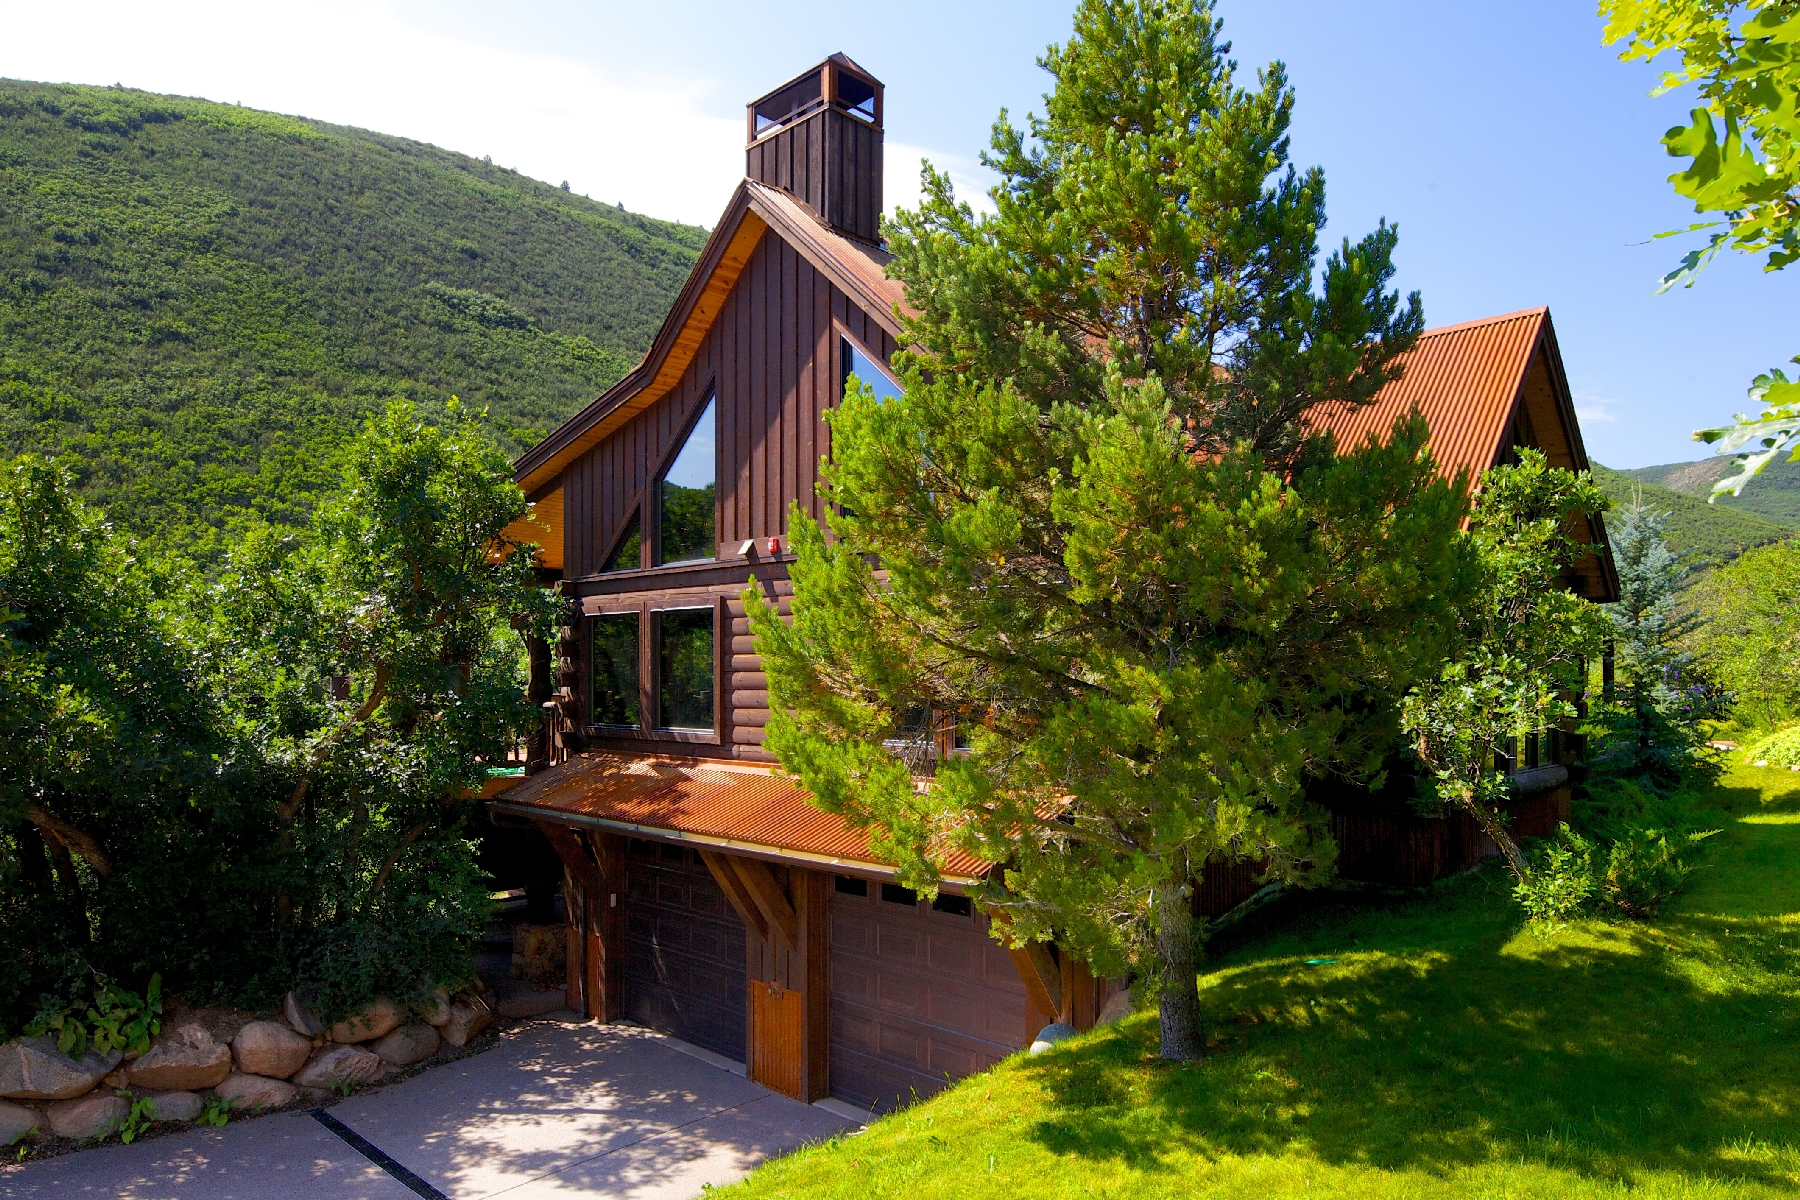 Casa Unifamiliar por un Venta en Sanctuary on West Sopris Creek 630 W. Sopris Creek Road Basalt, Colorado 81621 Estados Unidos